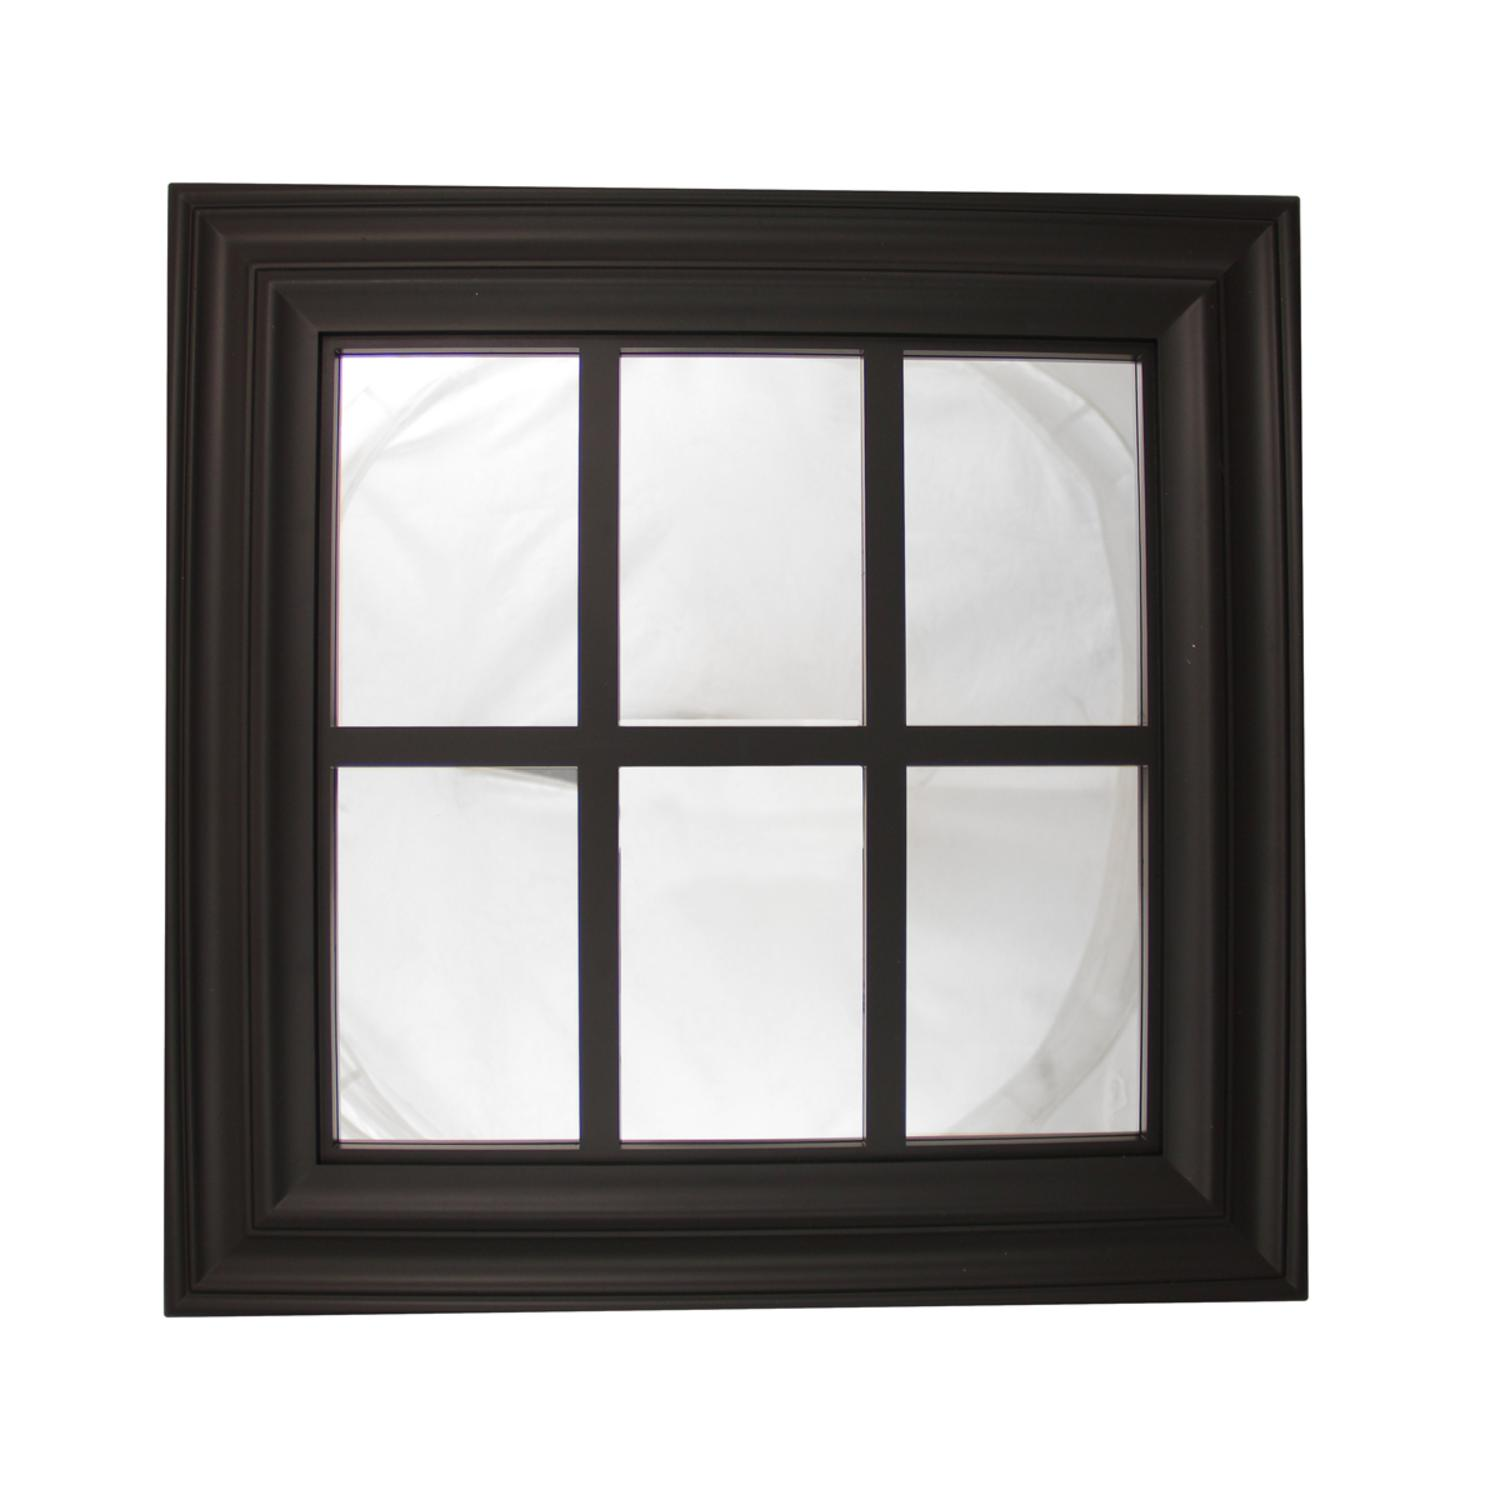 "17.25"" Jet Black Window Inspired Decorative Wall Mounted Mirror by Northlight"